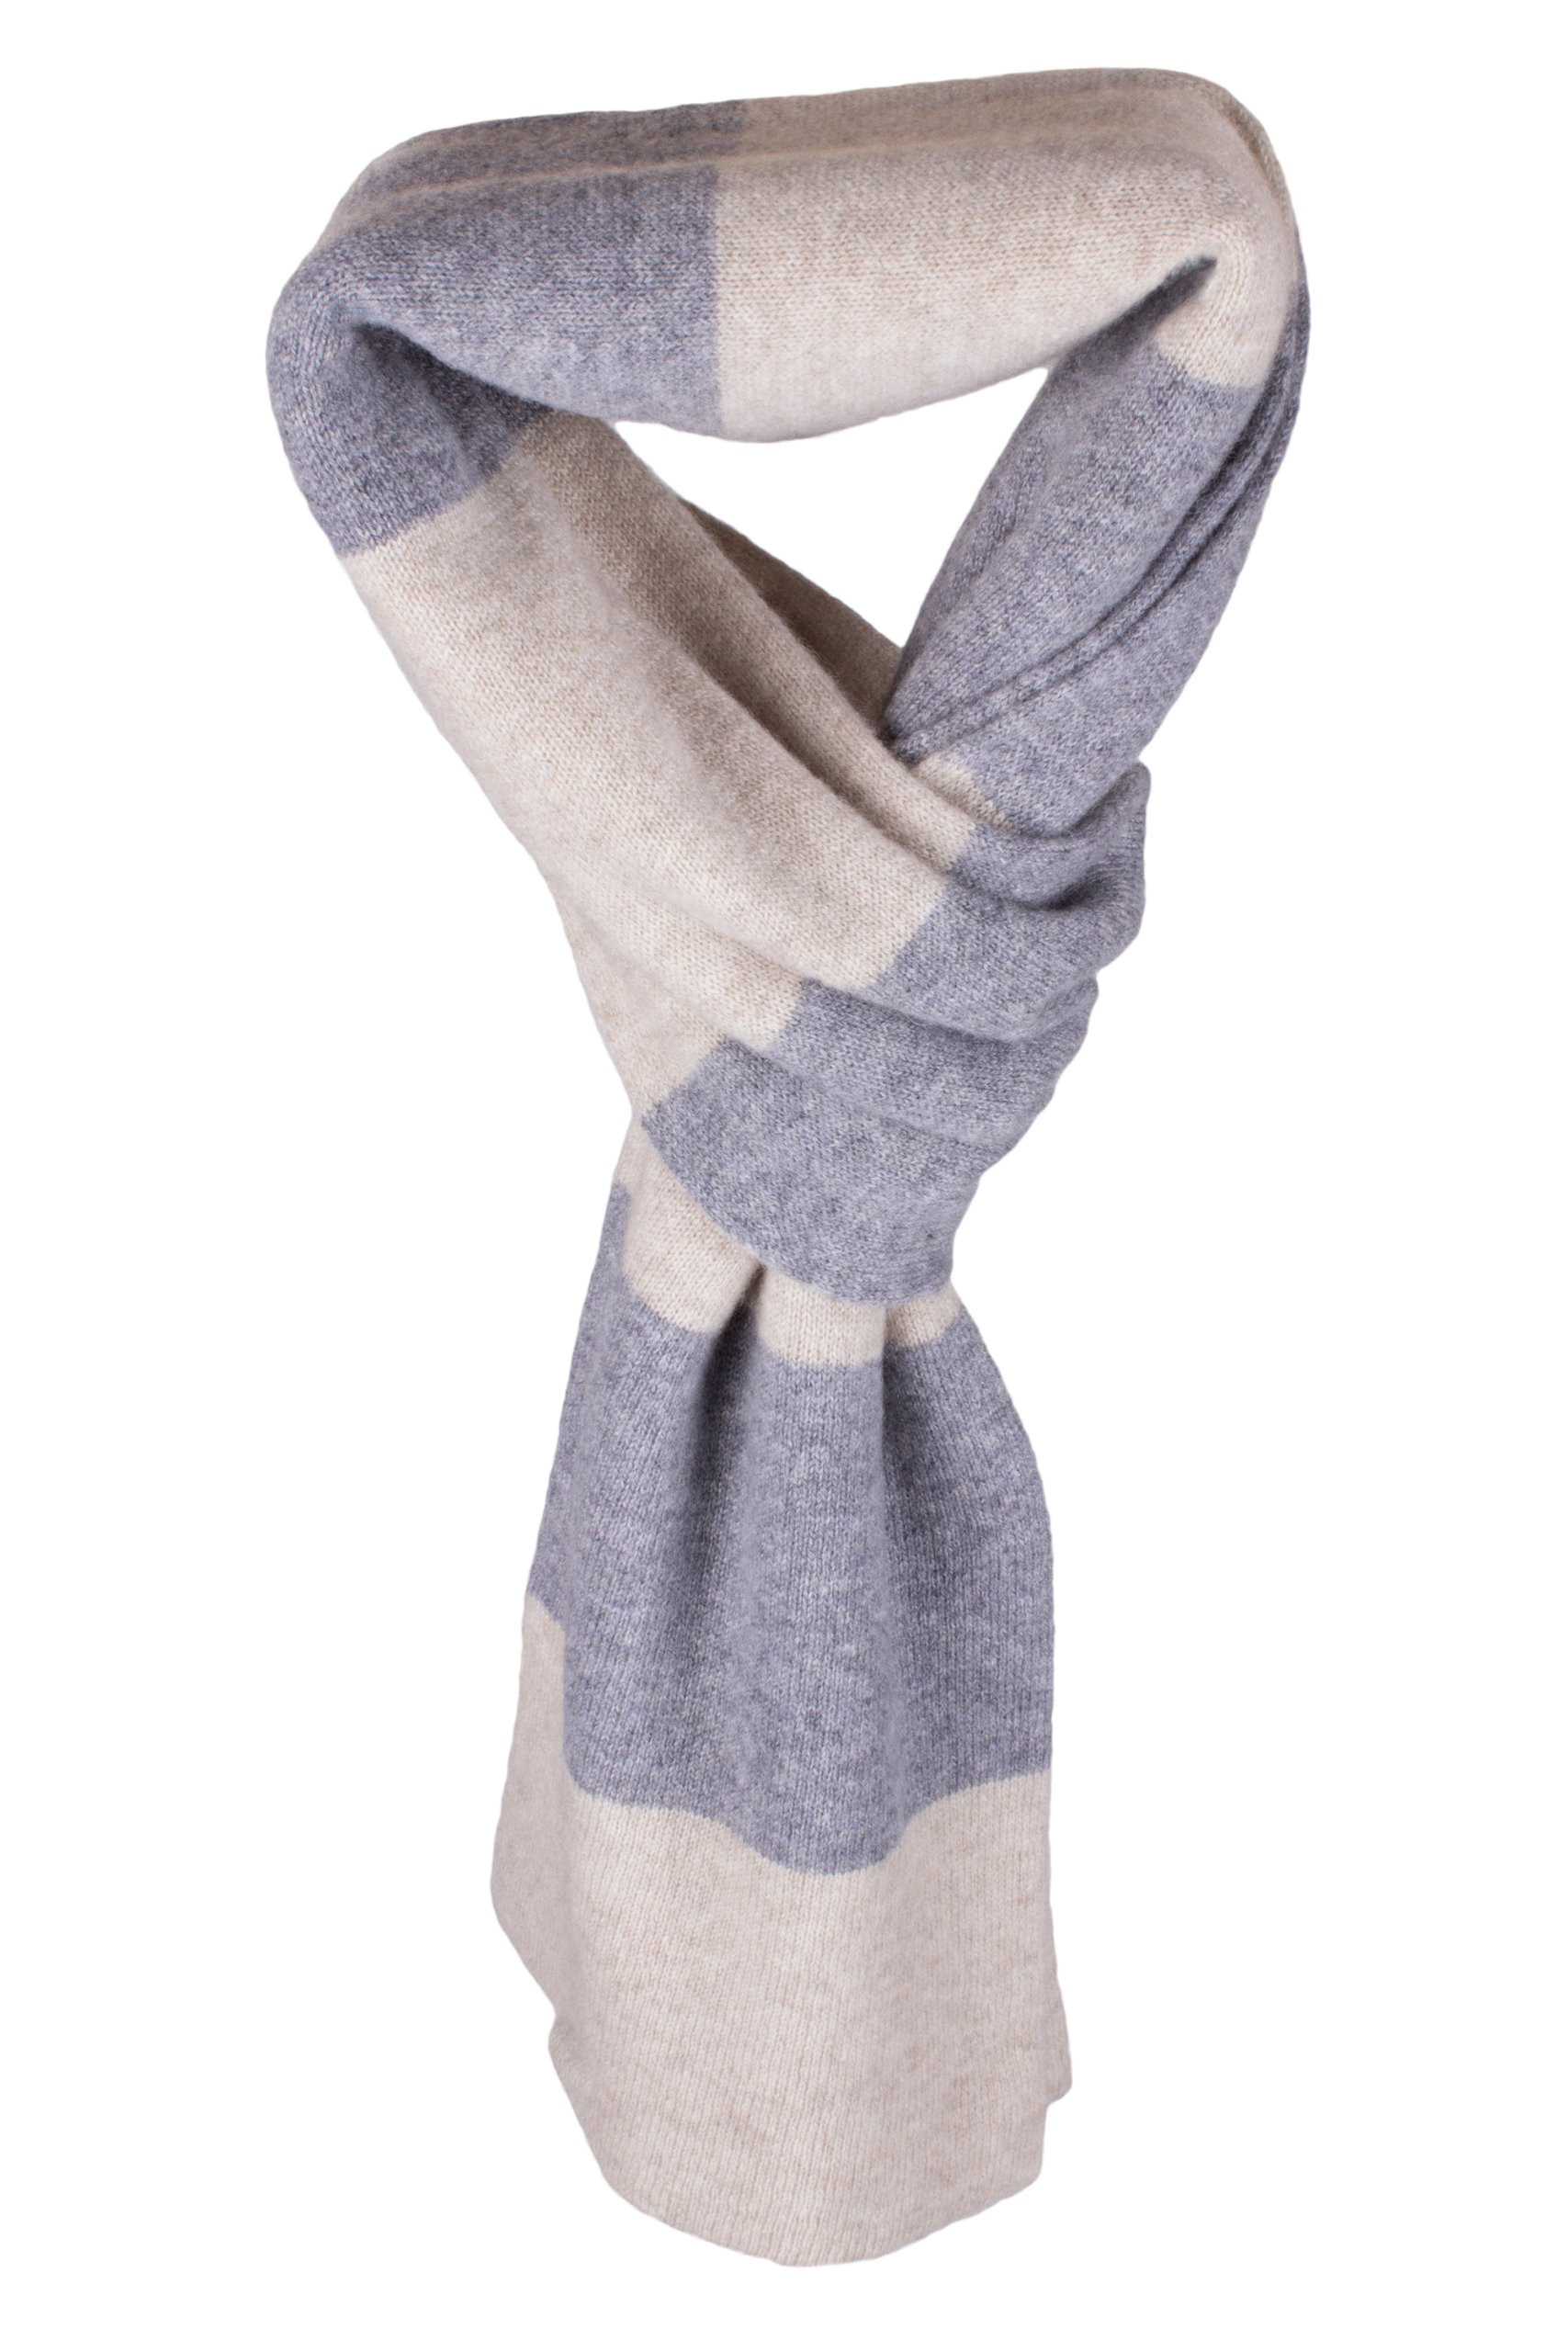 Mens Striped 100% Cashmere Scarf - Light Natural / Light Gray - handmade in Scotland by Love Cashmere